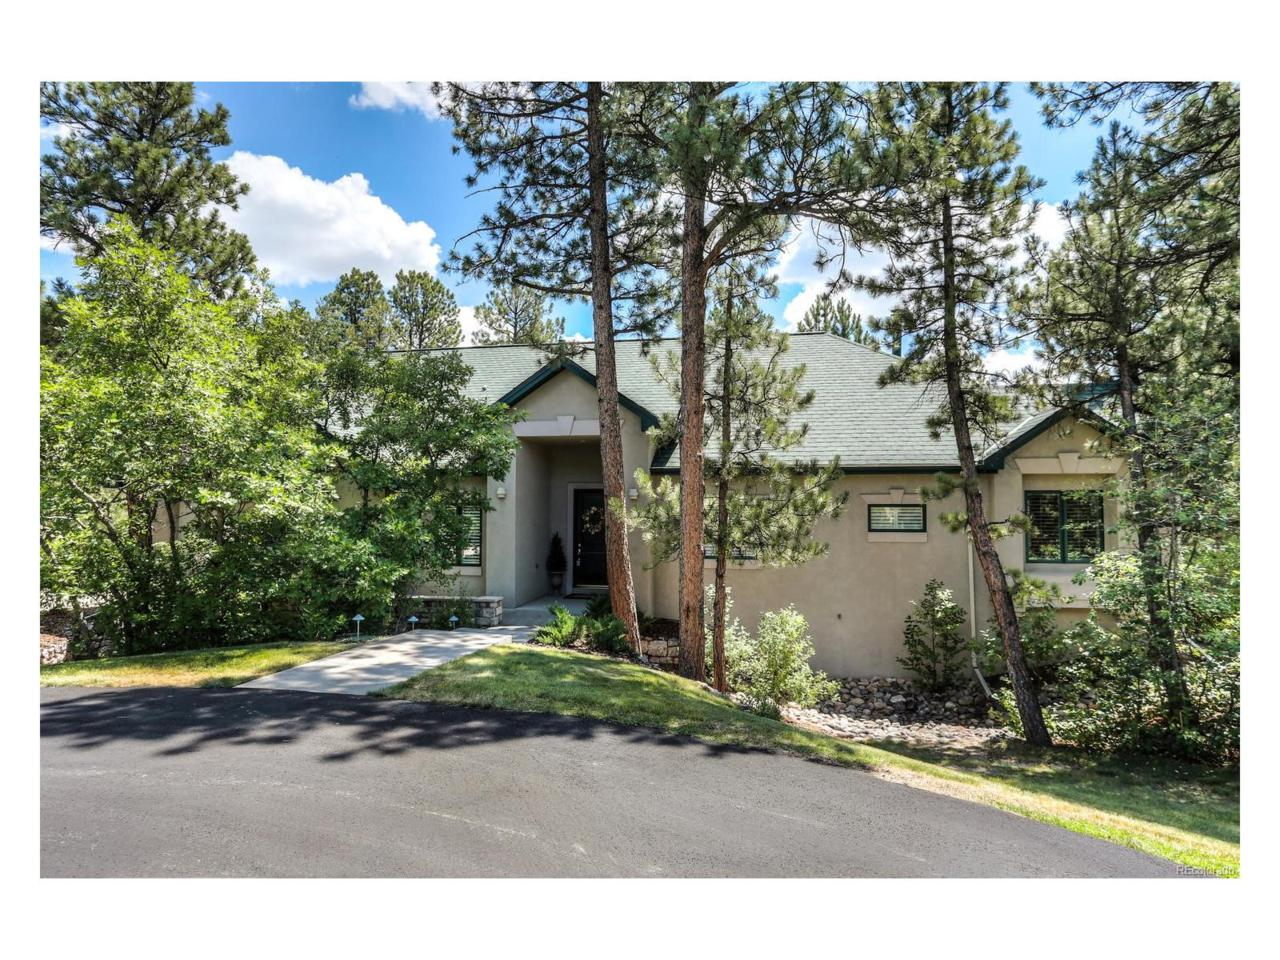 4528 Silver Bell Circle, Castle Rock, CO 80108 (MLS #8056325) :: 8z Real Estate